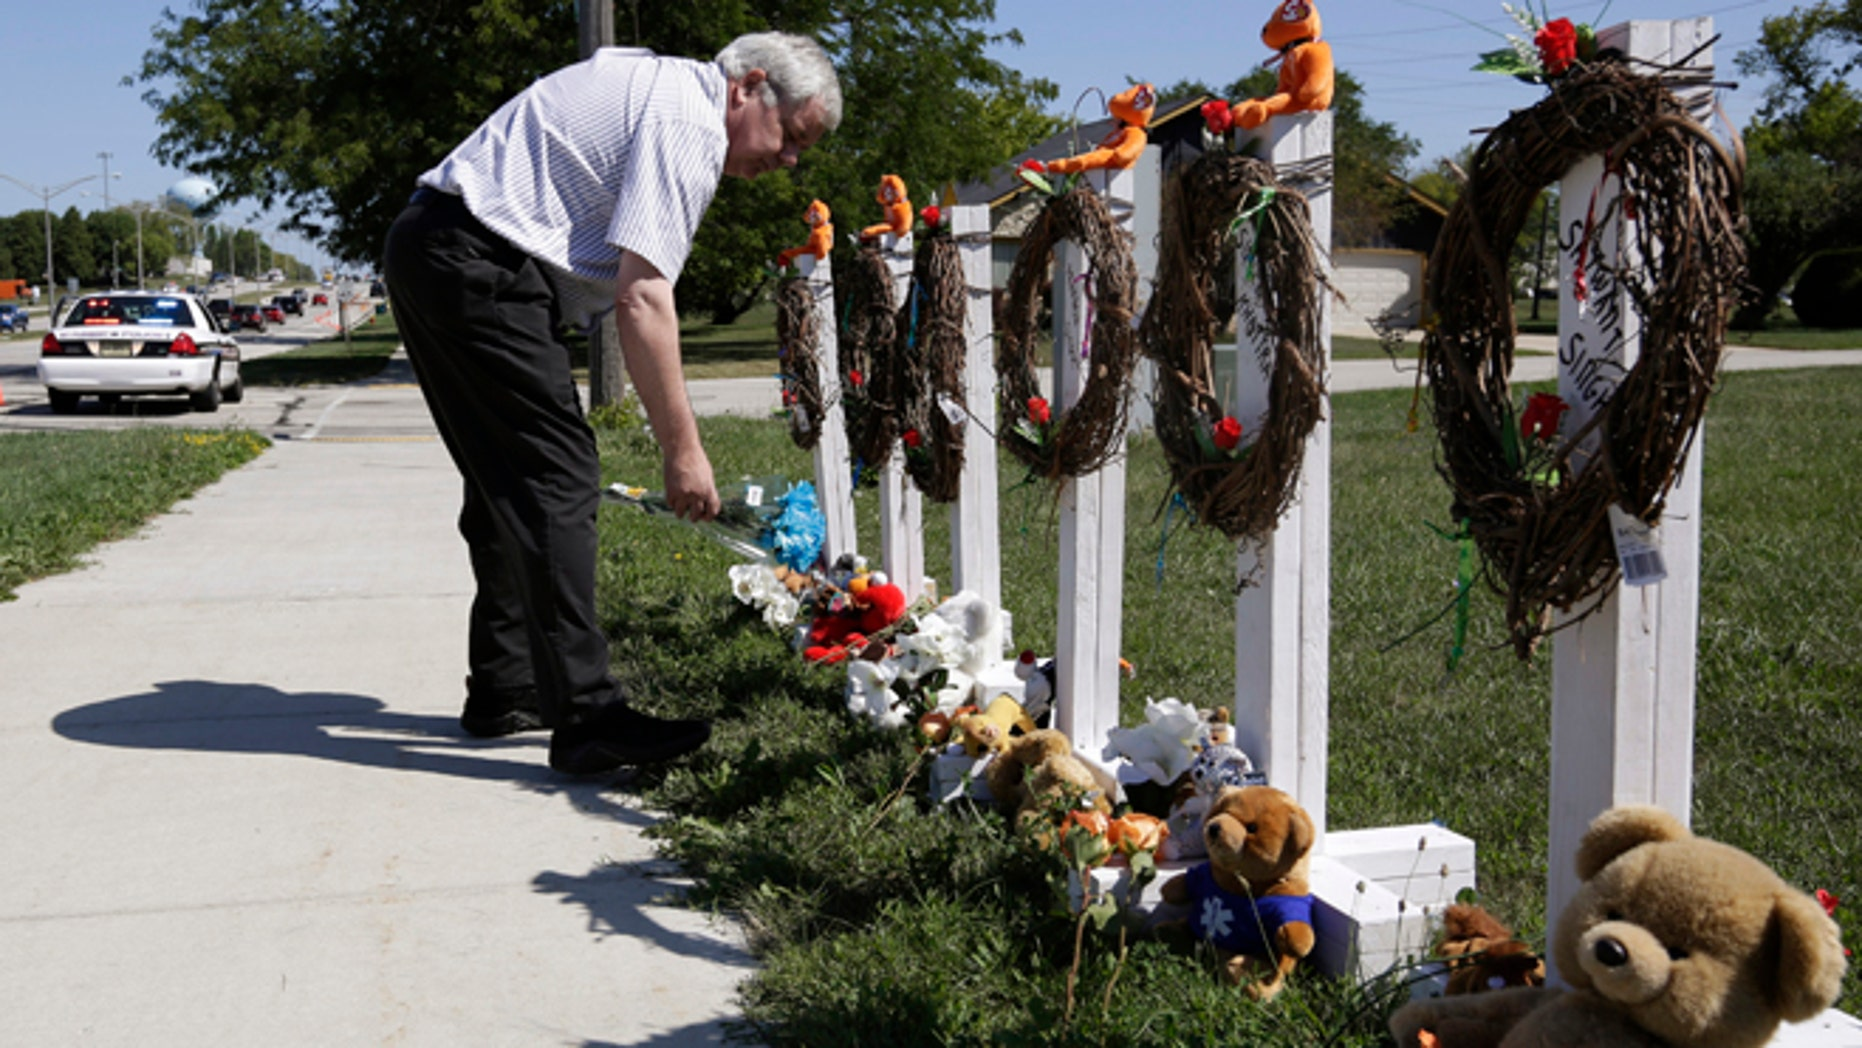 August 7, 2012: Peter Gallagher leaves flowers at a memorial honouring the six victims of a shooting at a Sikh Temple in Oak Creek, Wisconsin.